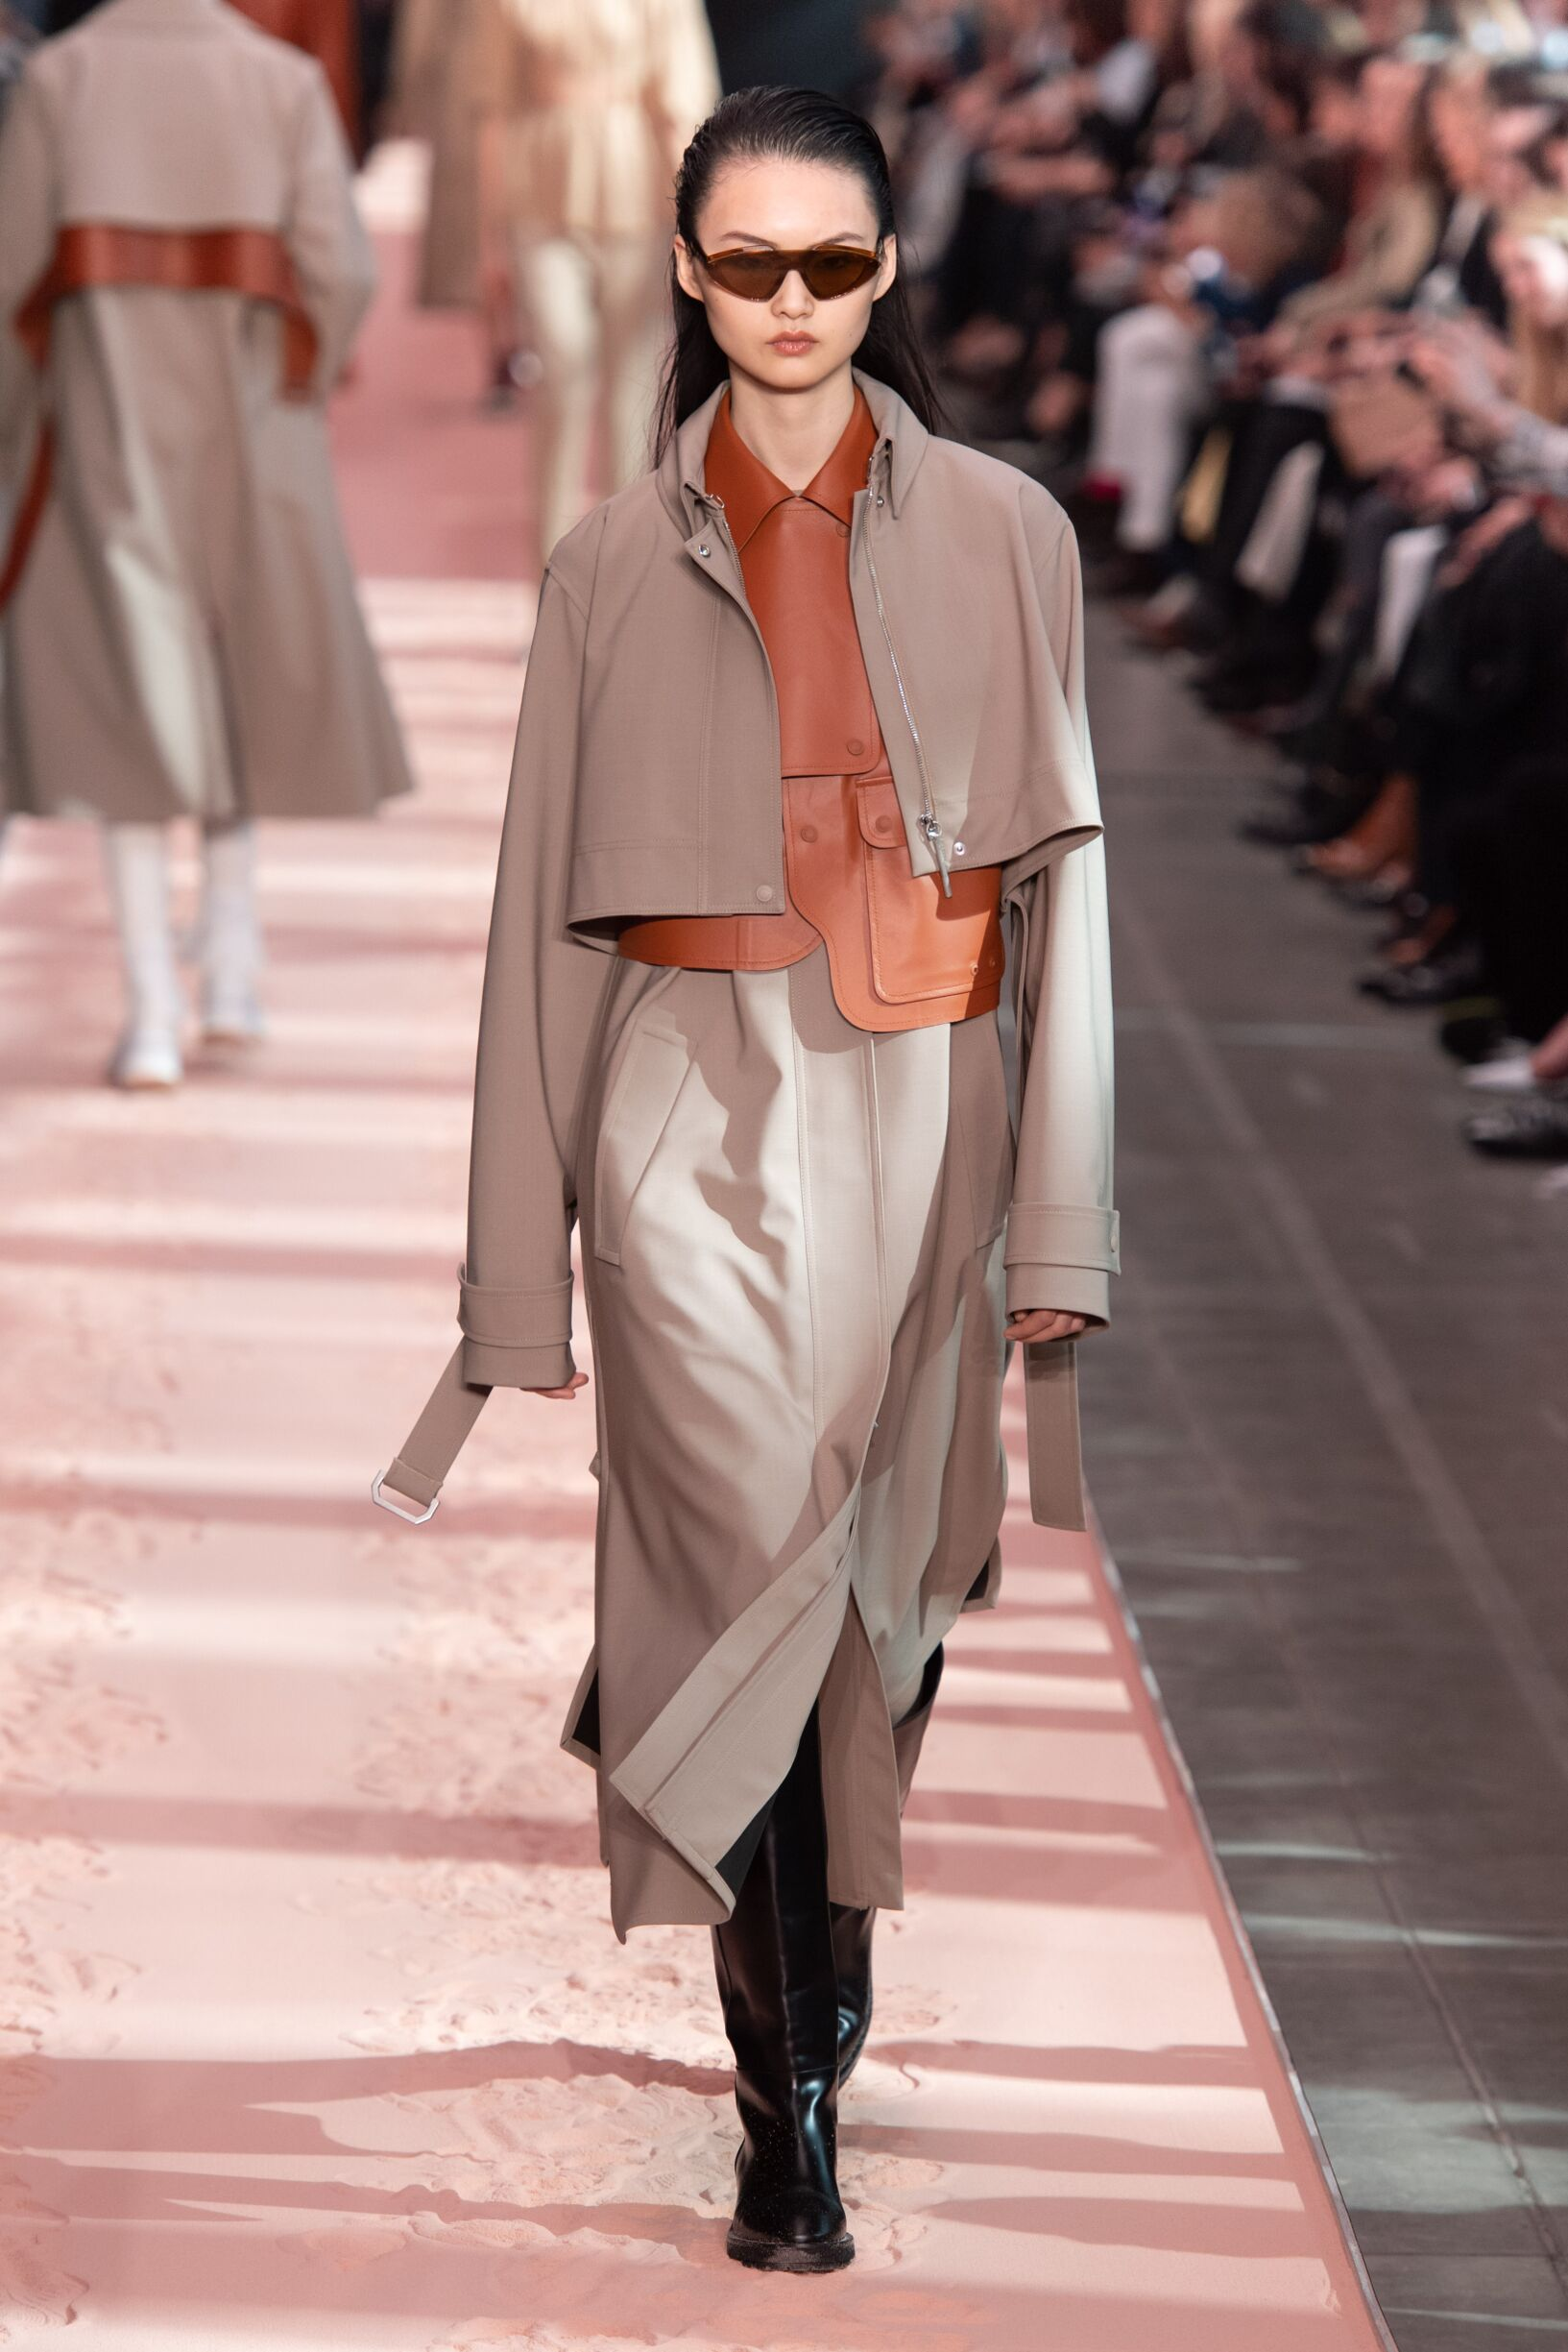 2019 Sportmax Winter Catwalk